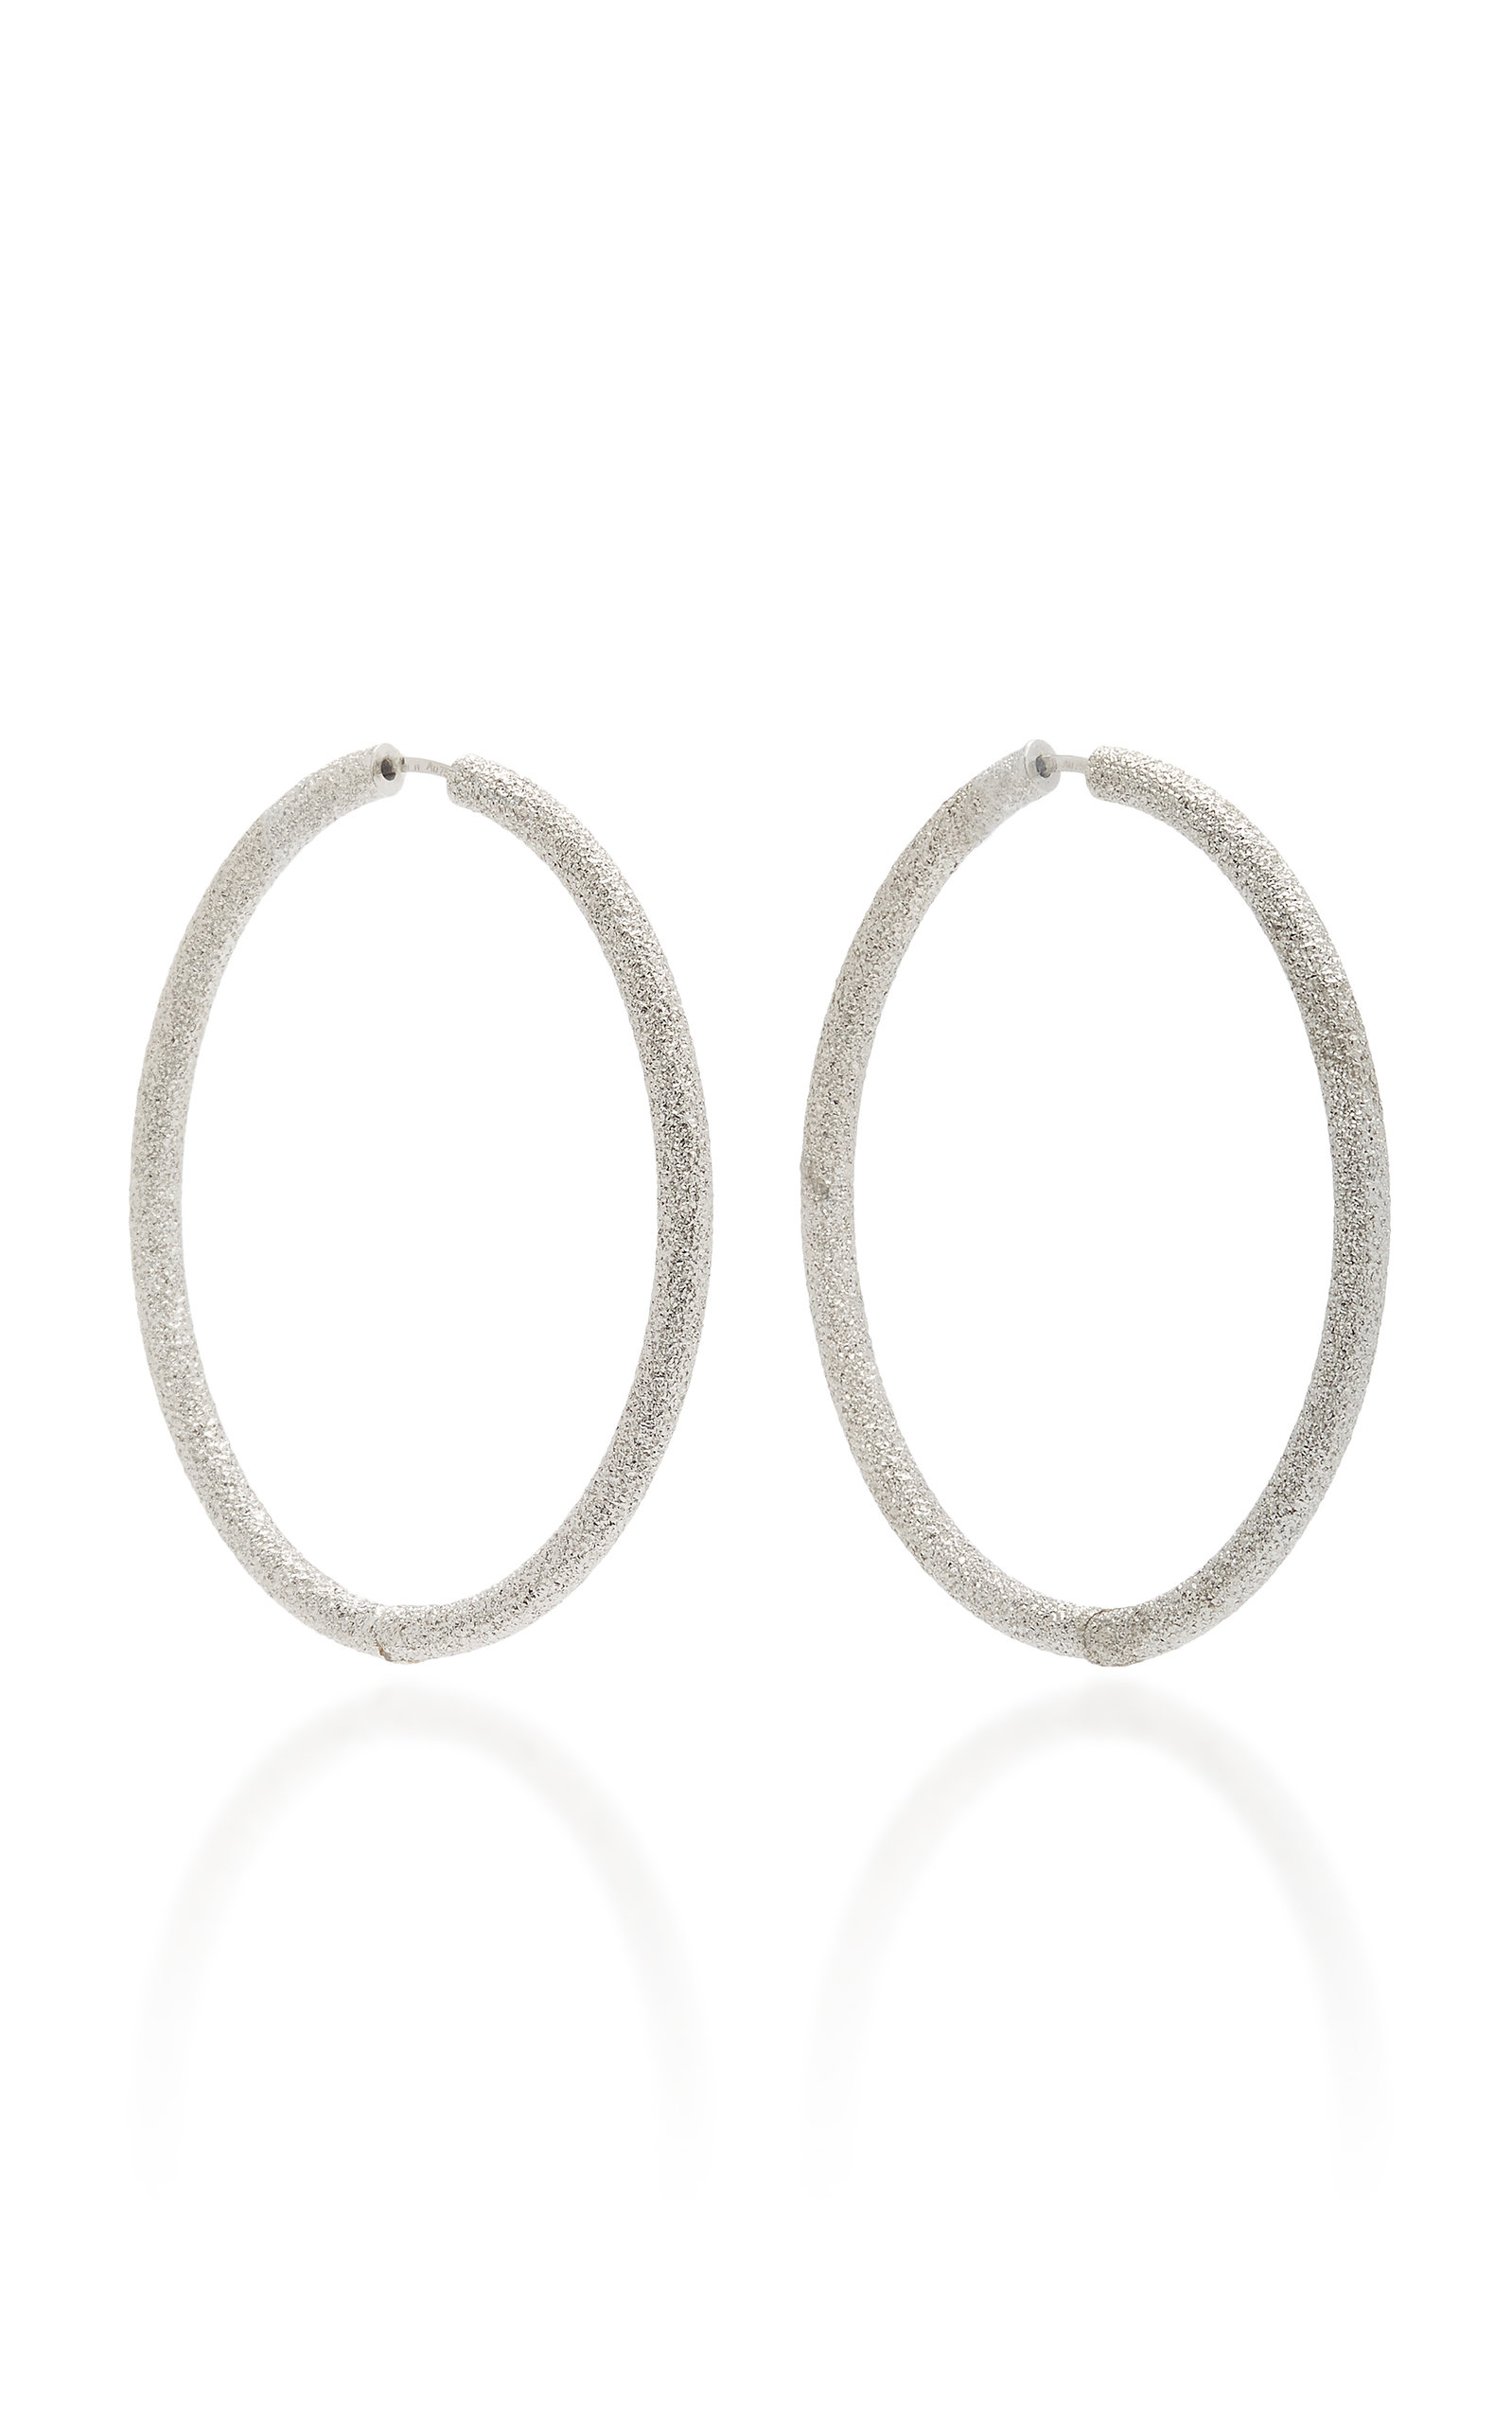 FLORENTINE FINISH EXTRA LARGE OVAL THICK HOOP EARRINGS